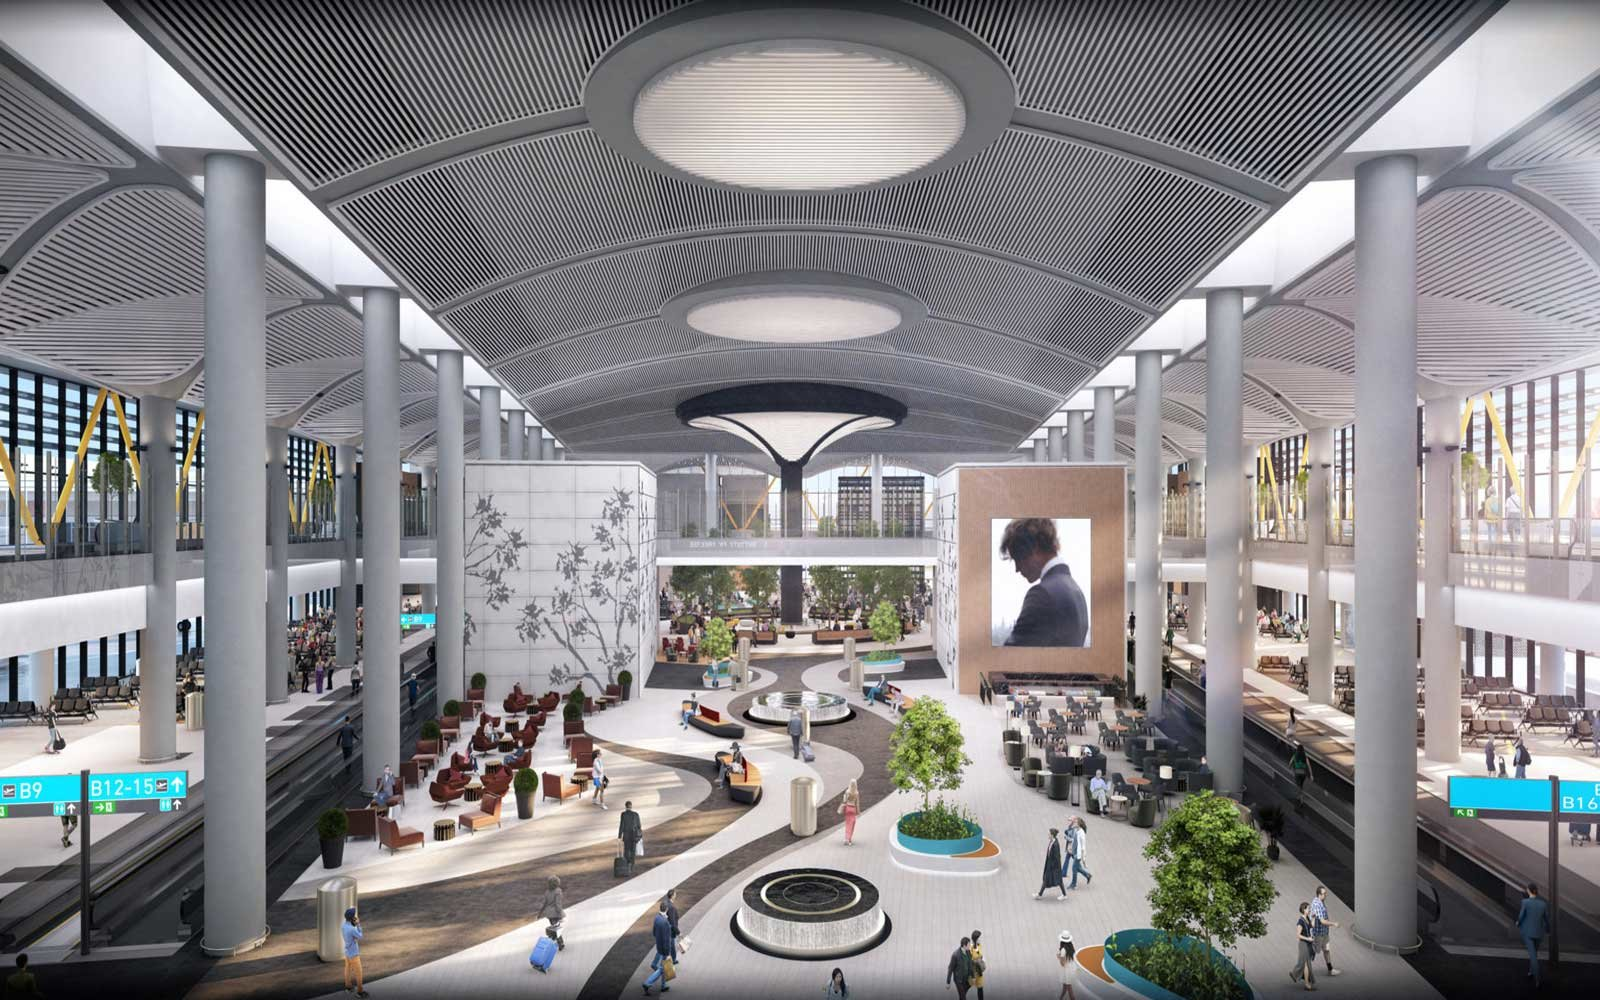 The airport's terminal spans a staggering 15.5. million square feet.